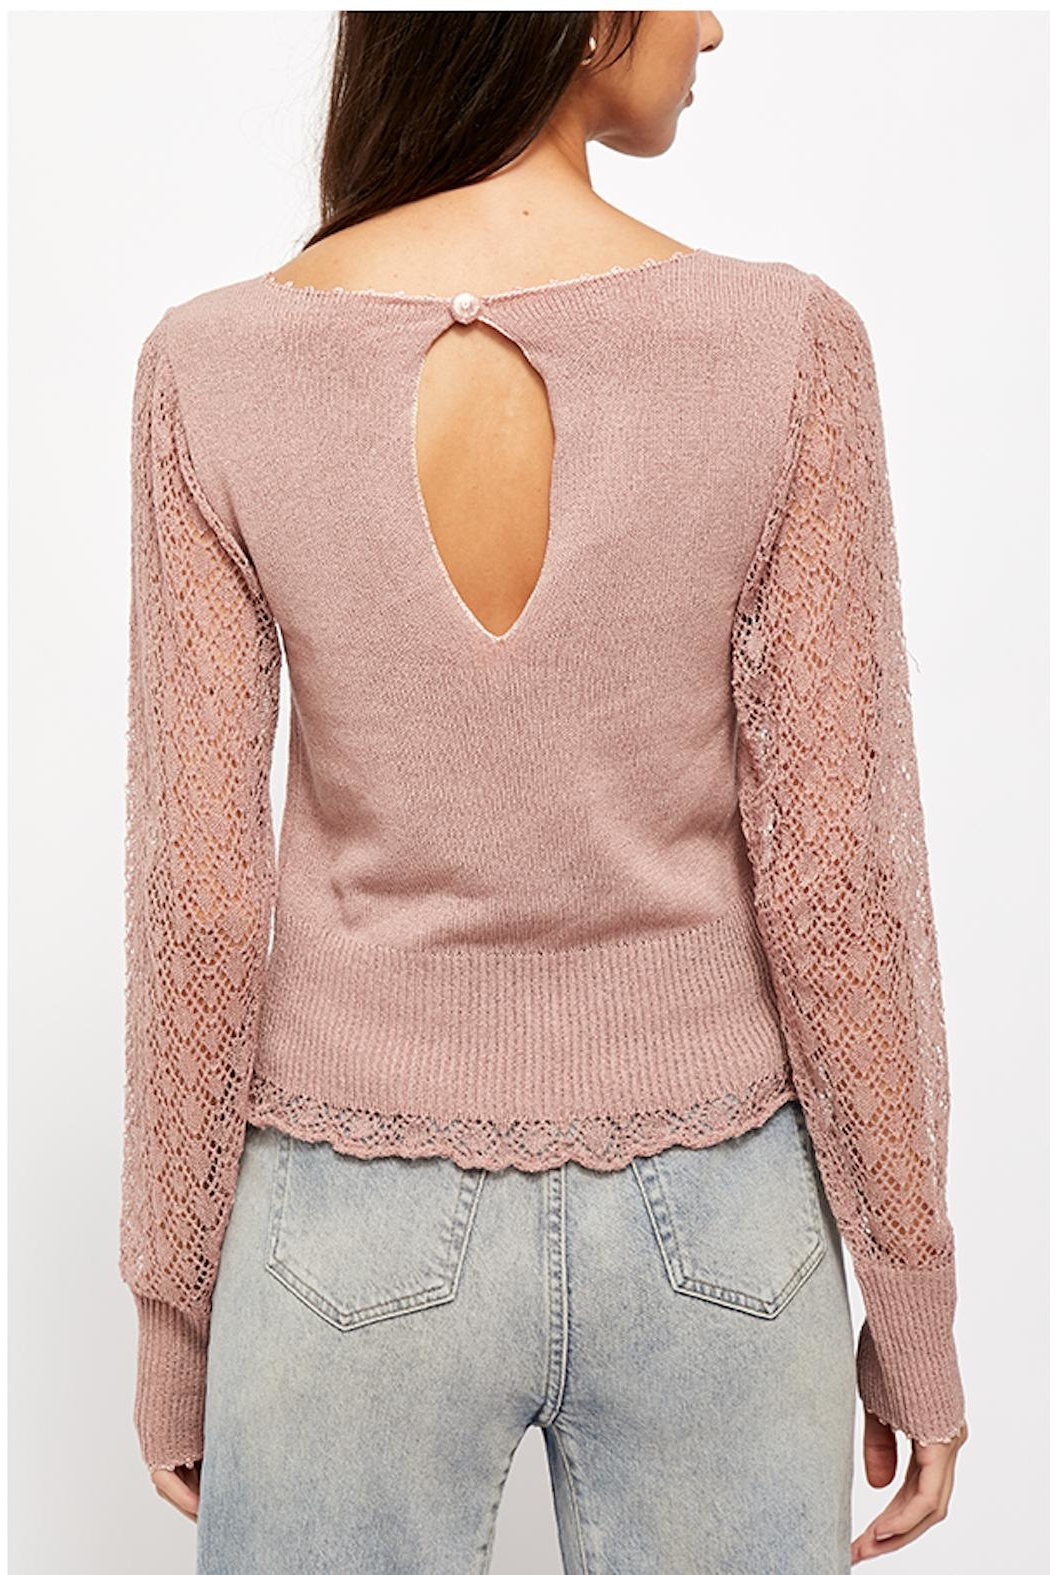 Free People Cyrstallized Sweater - Side Cropped Image